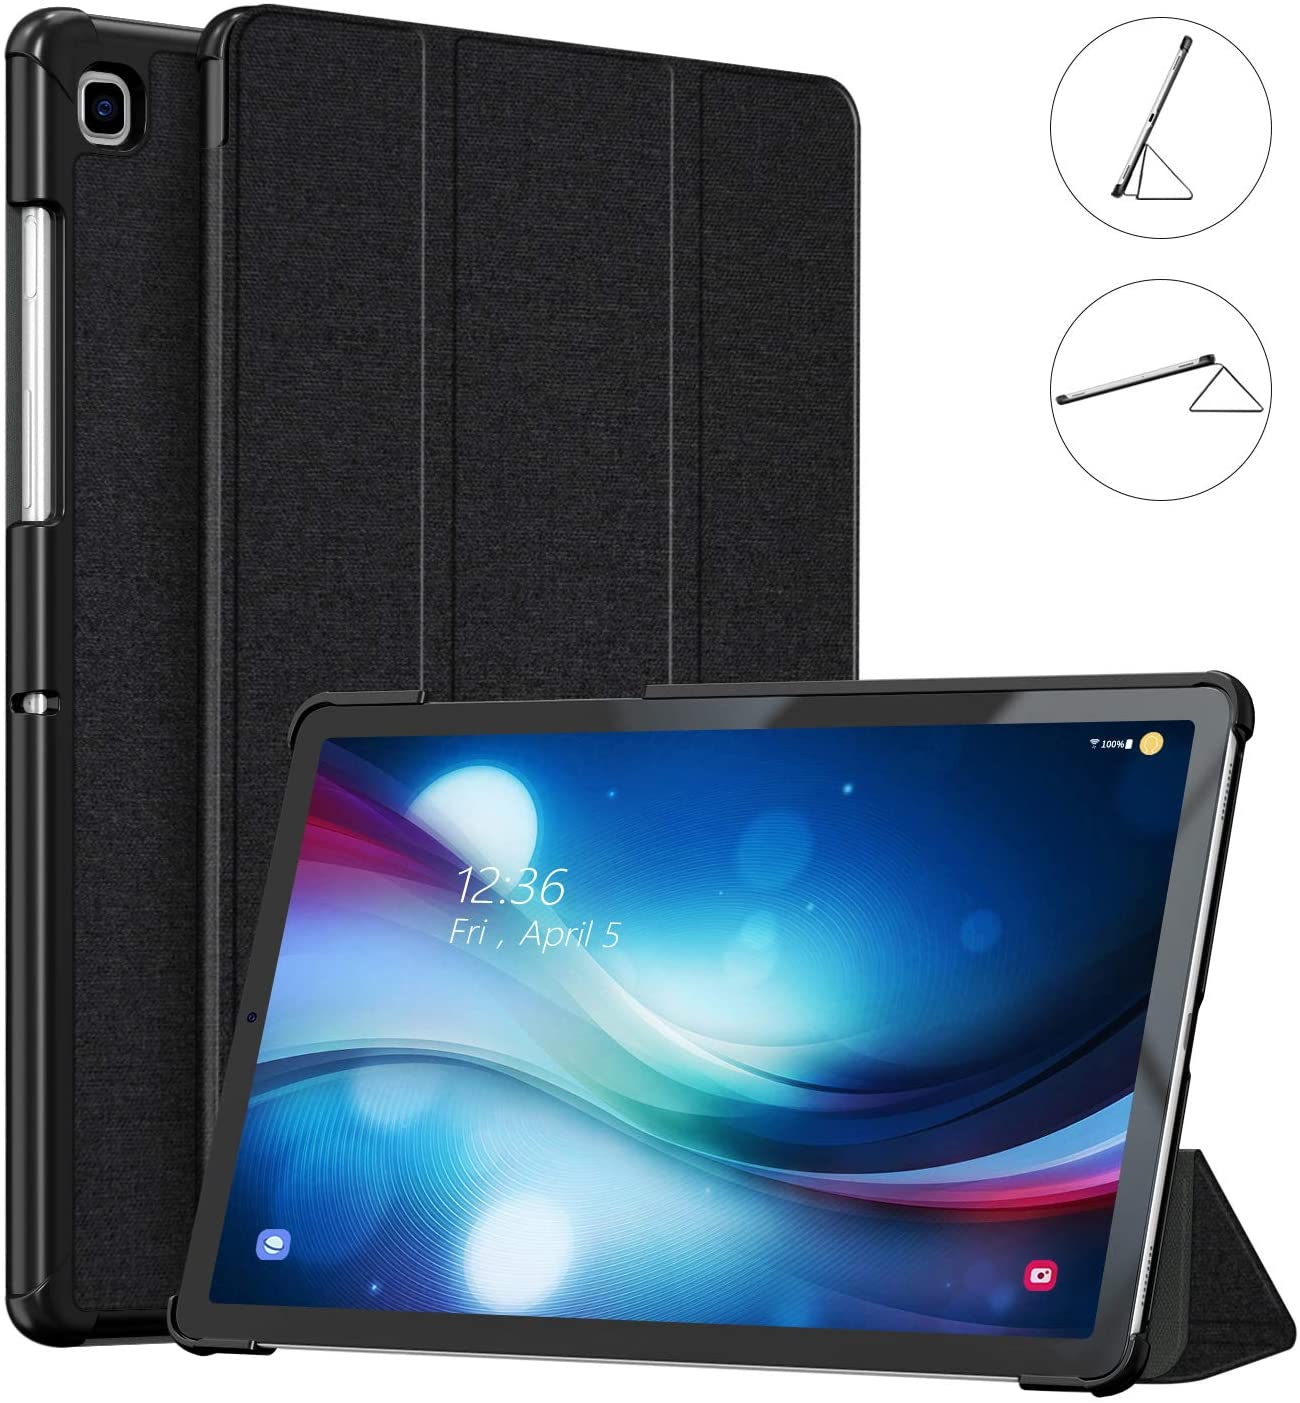 VECO Samsung Galaxy Tab S5e Case 2019 SM-T720/T725 - Ultra Slim Tri-Fold Stand Shockproof Case with Auto Sleep/Wake Feature Designed for Samsung Galaxy Tab S5e 10.5 Inch(Black)